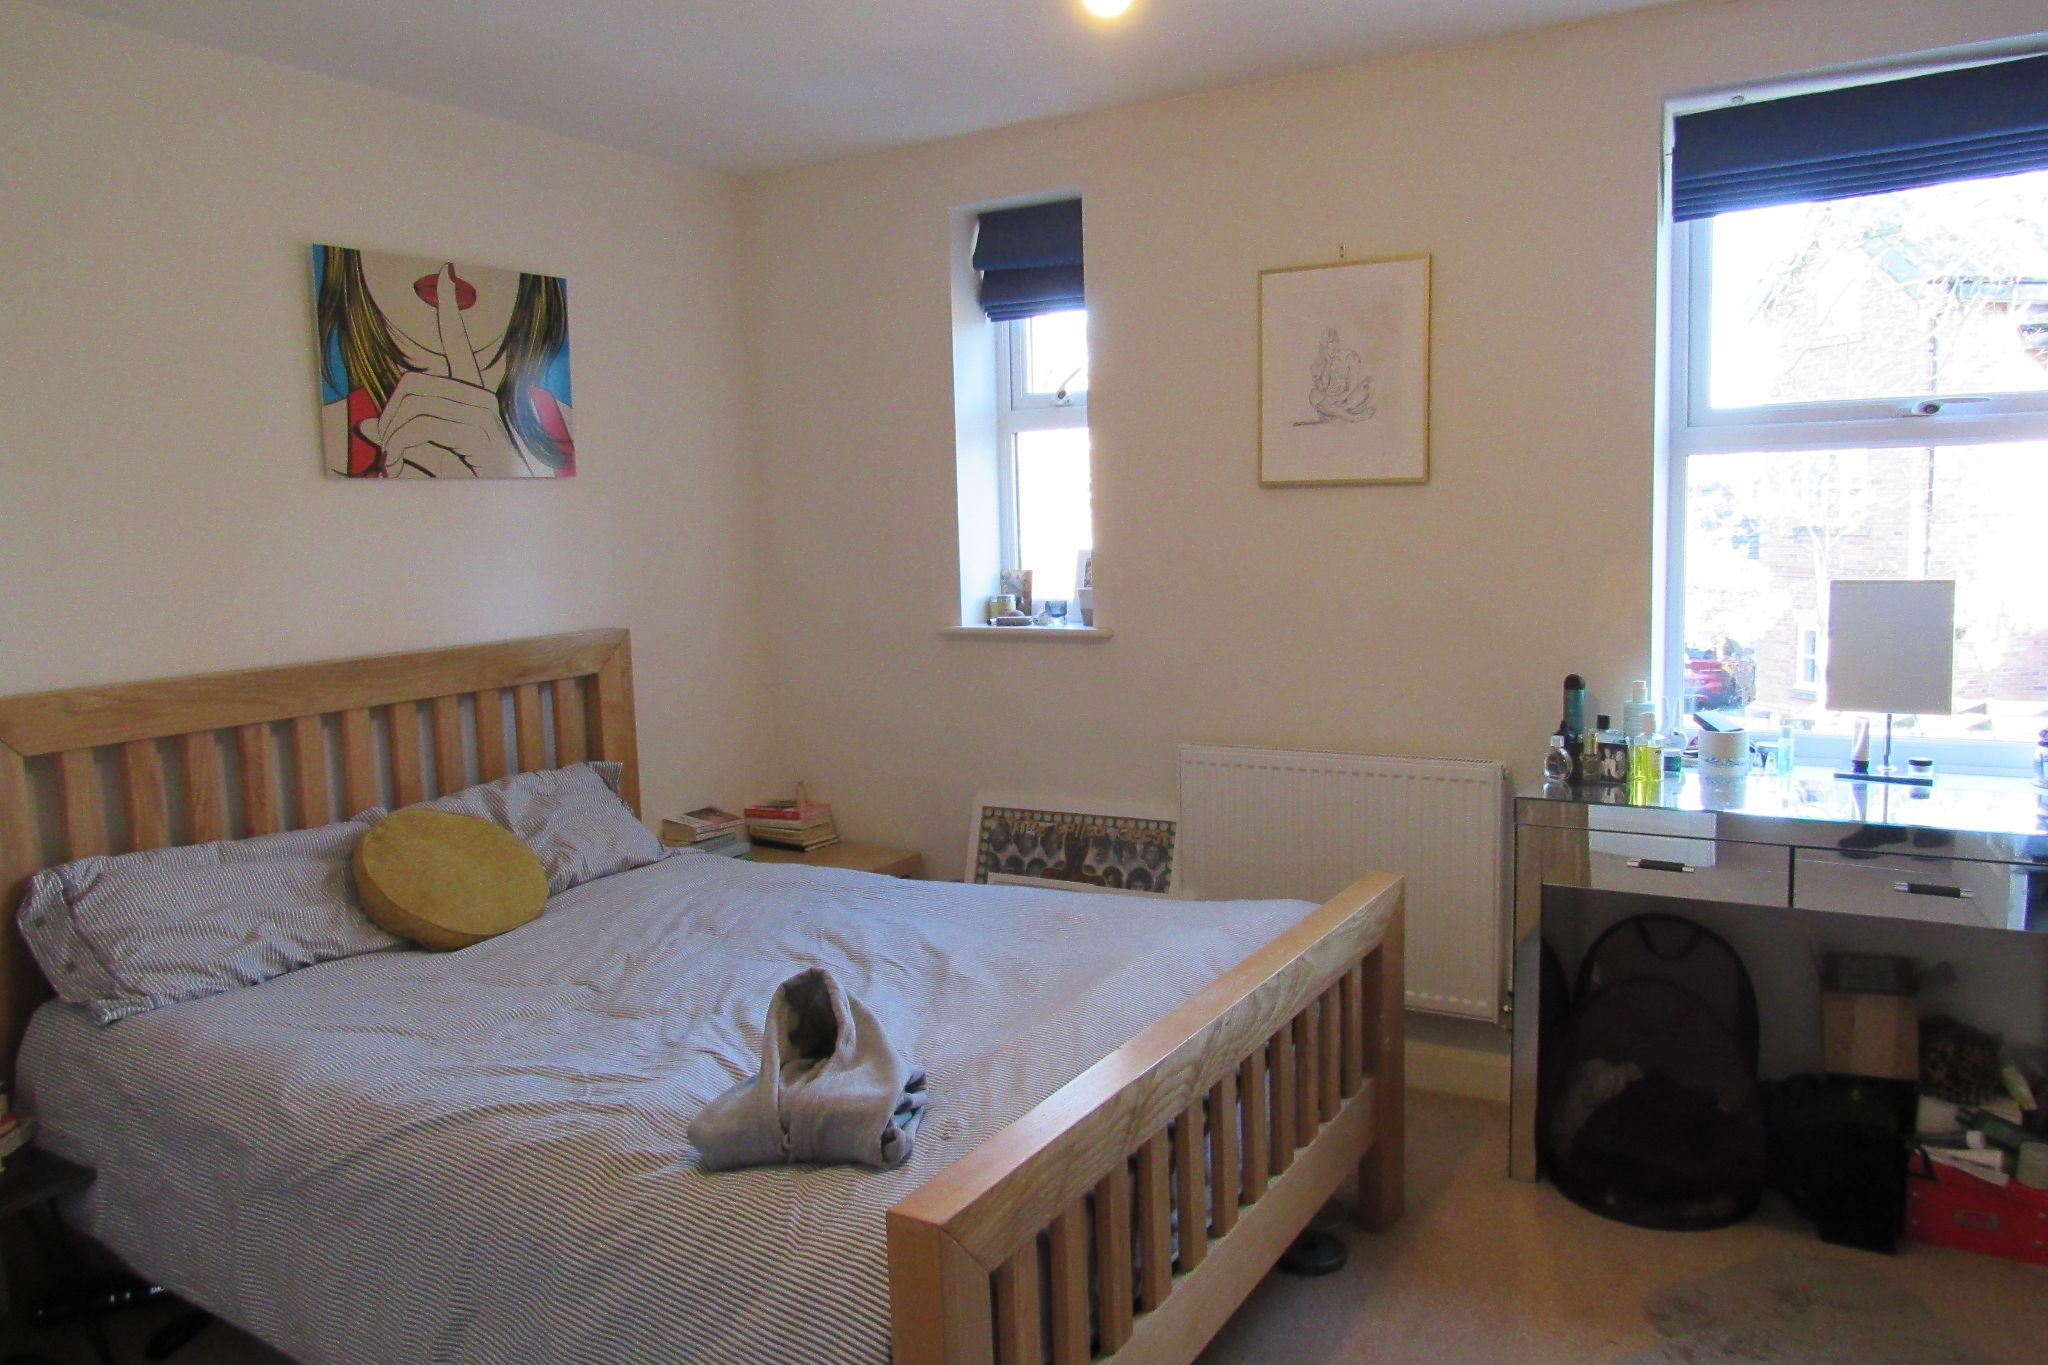 3 bedroom apartment flat/apartment SSTC in Sale - Photograph 27.